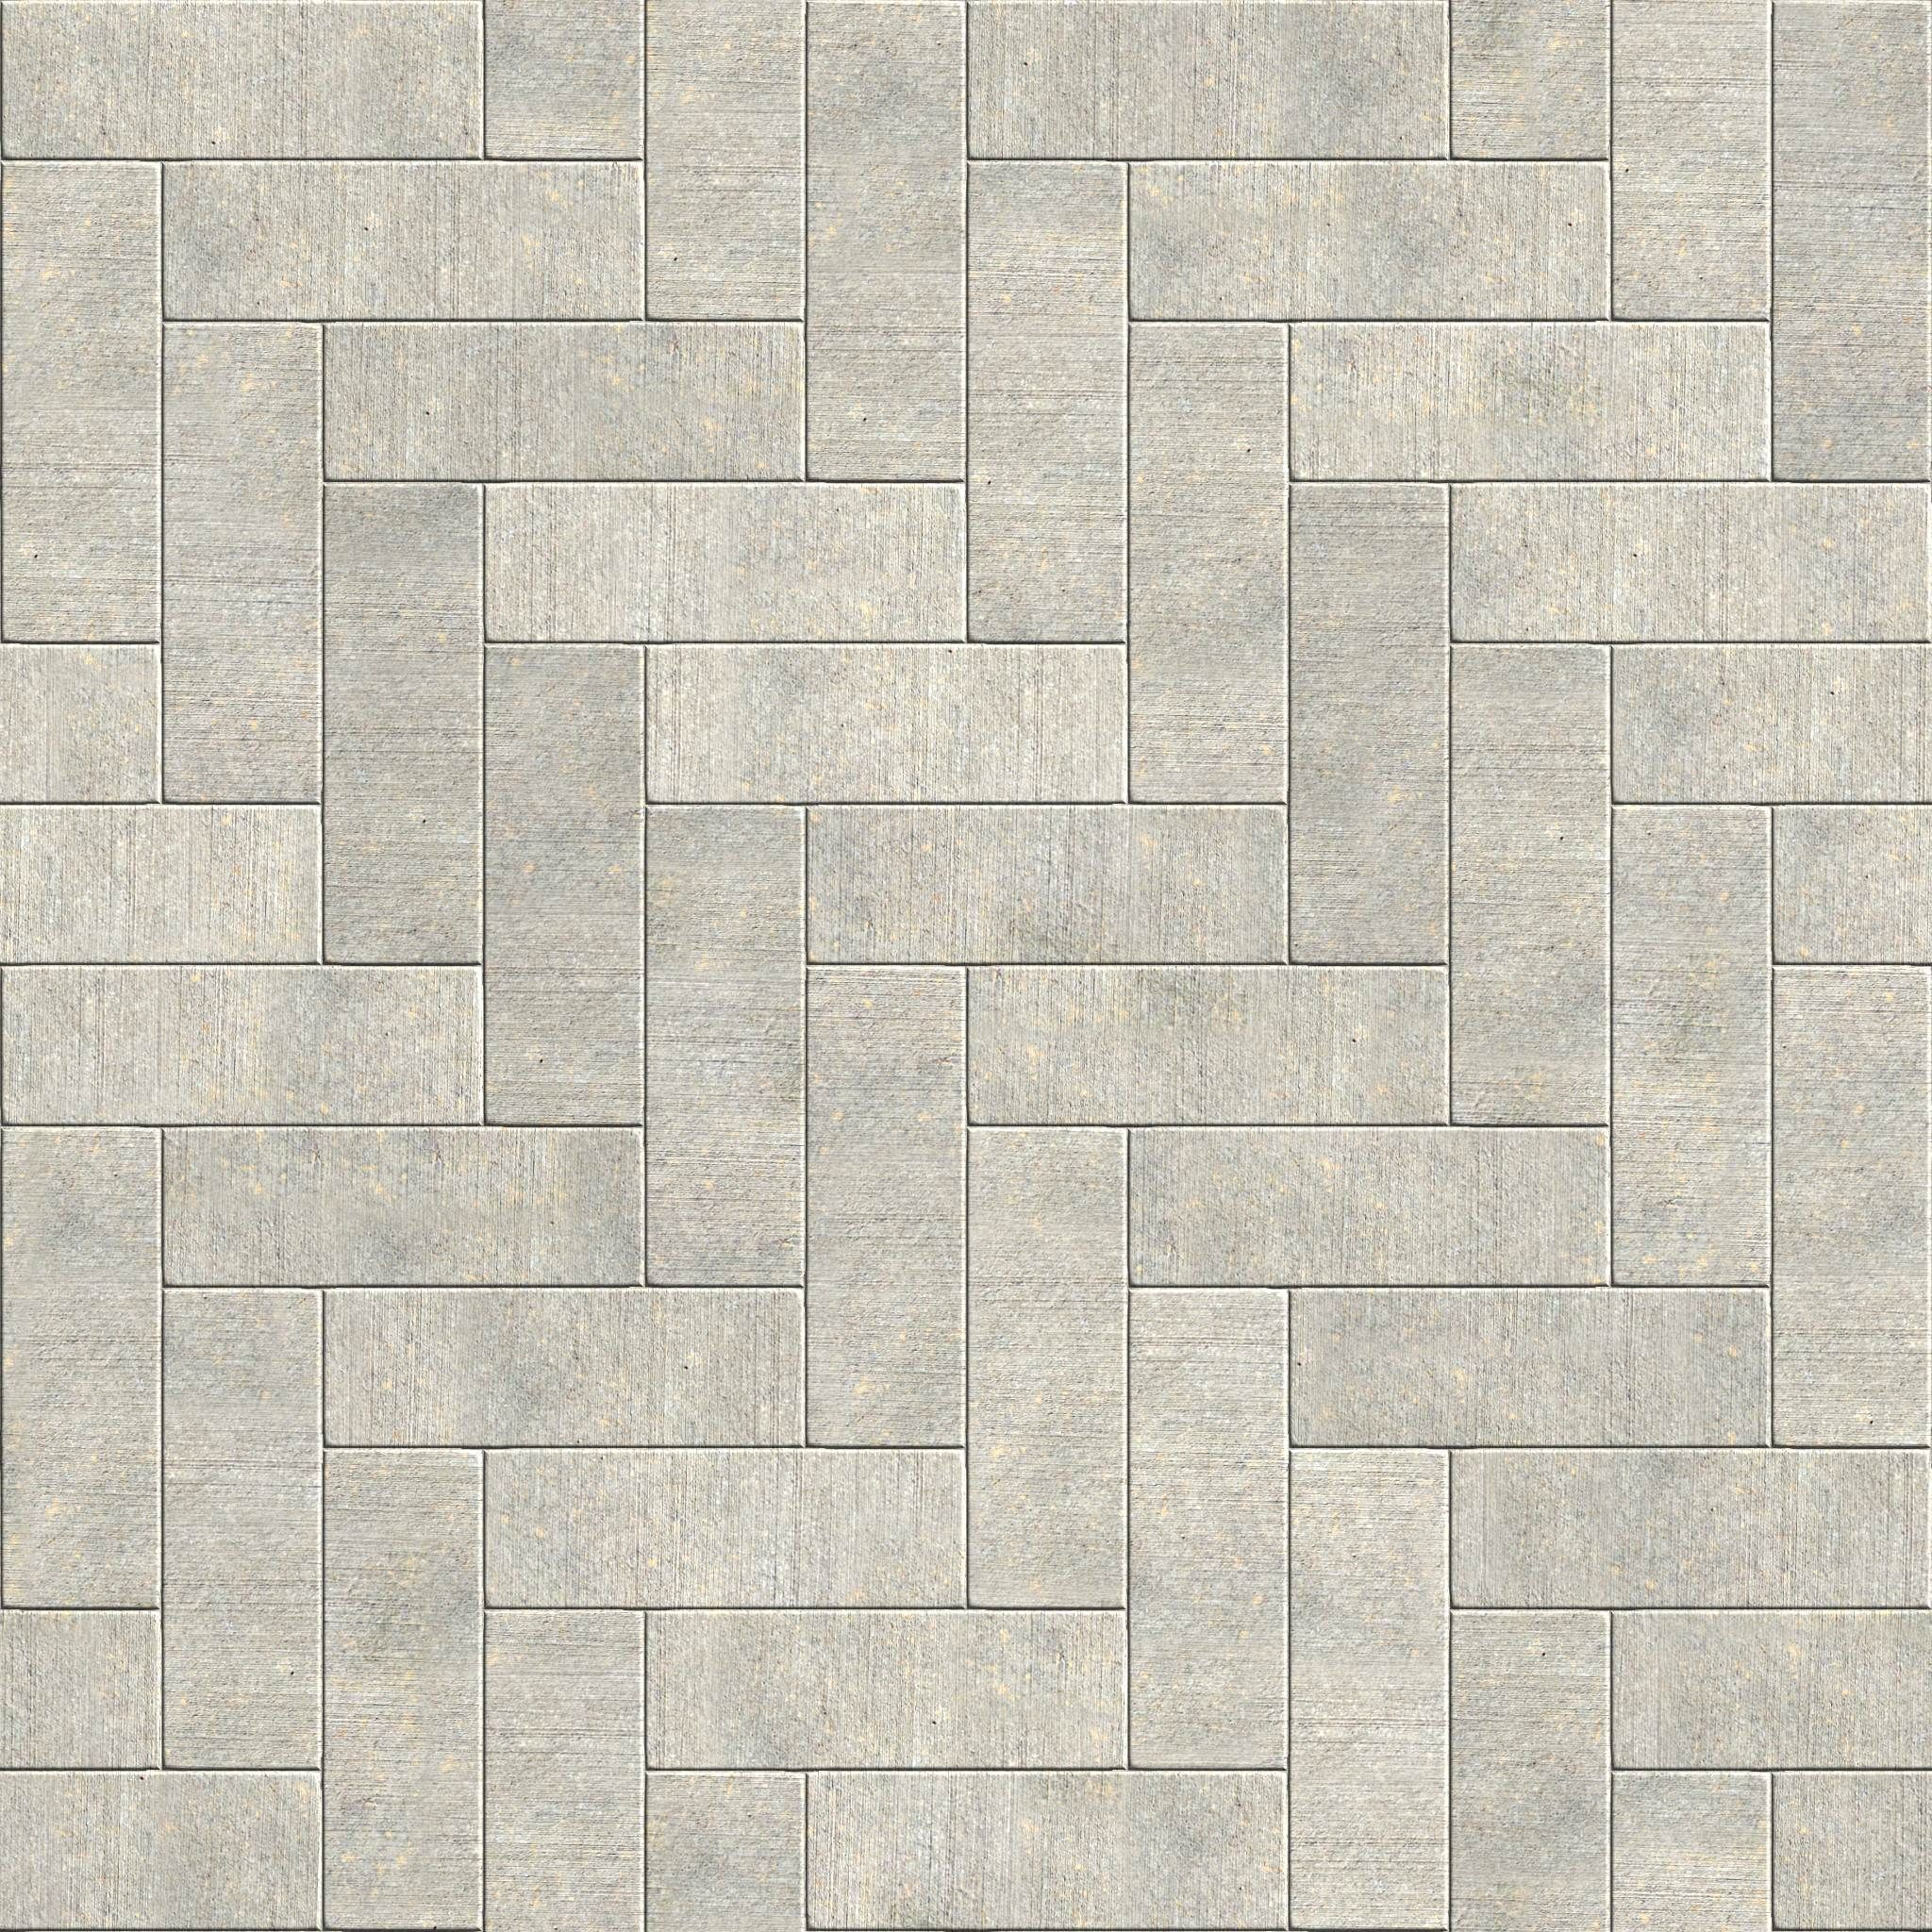 Seamless Kitchen Flooring Dirty Asphalt Texture Buscar Con Google Photoshop Resources